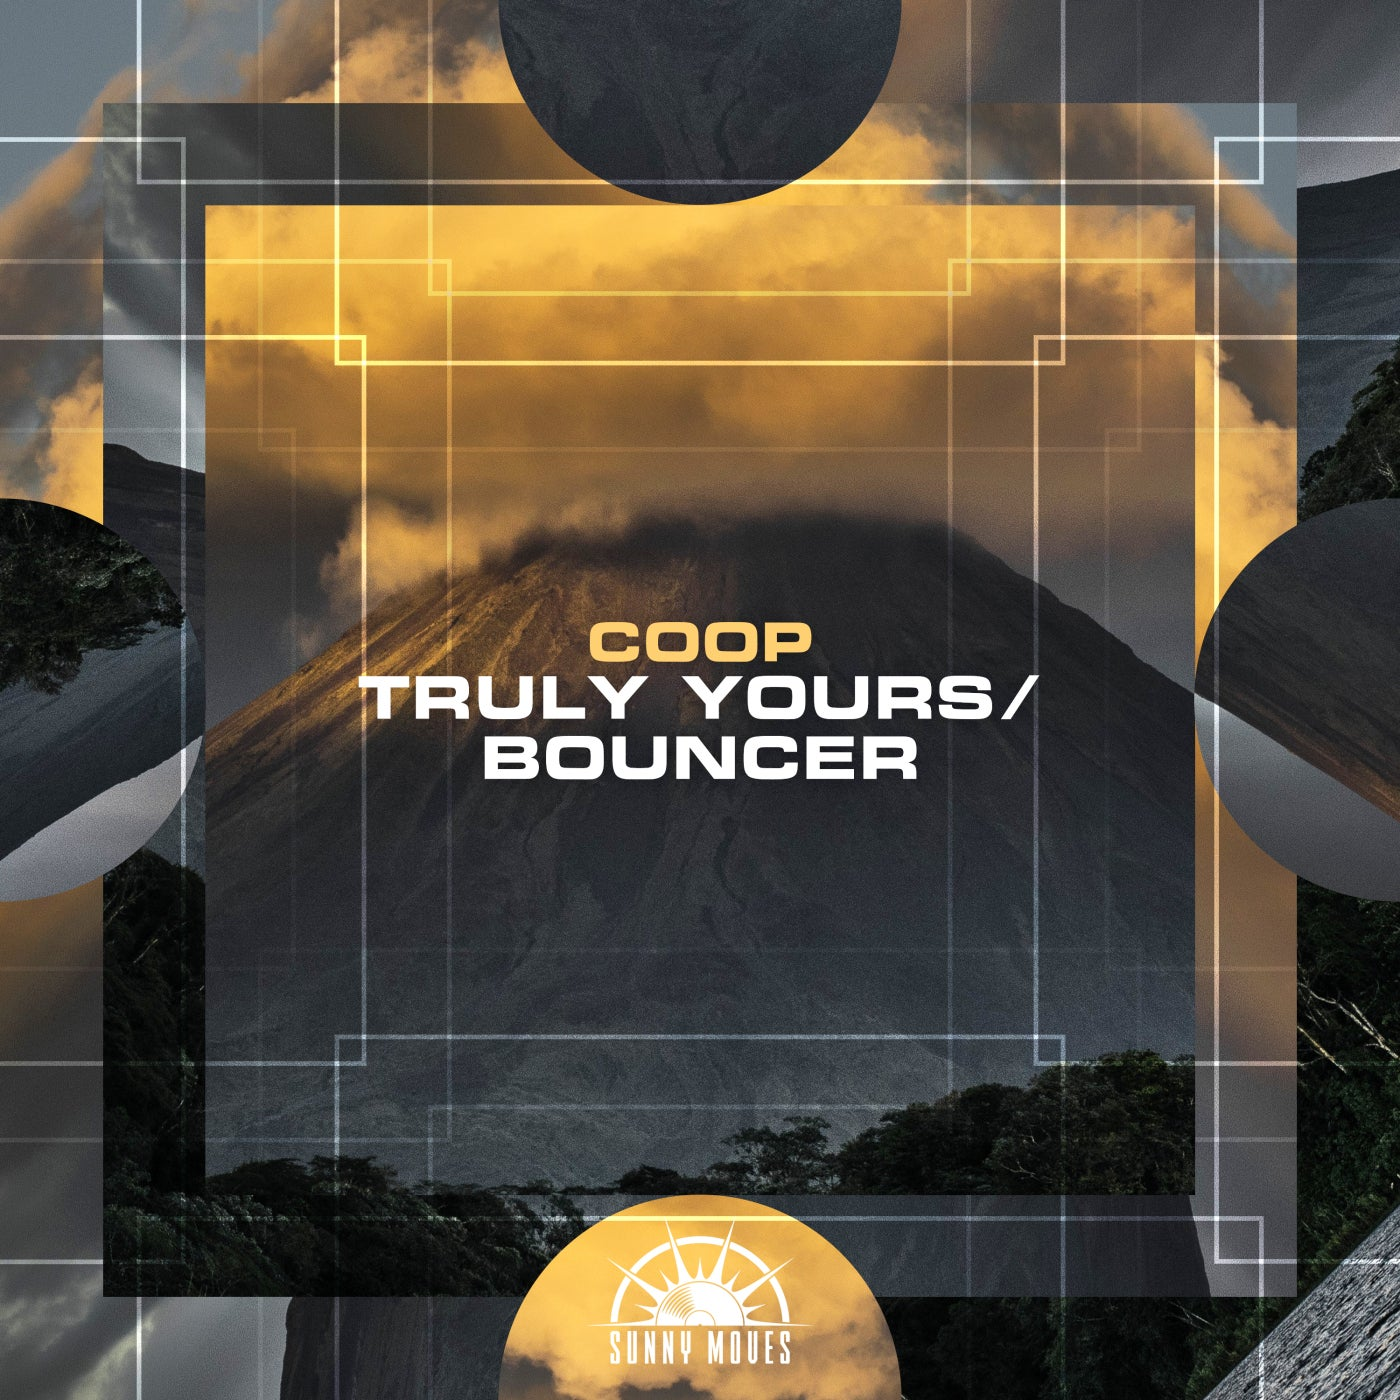 Coop - Truly Yours / Bouncer (2021)